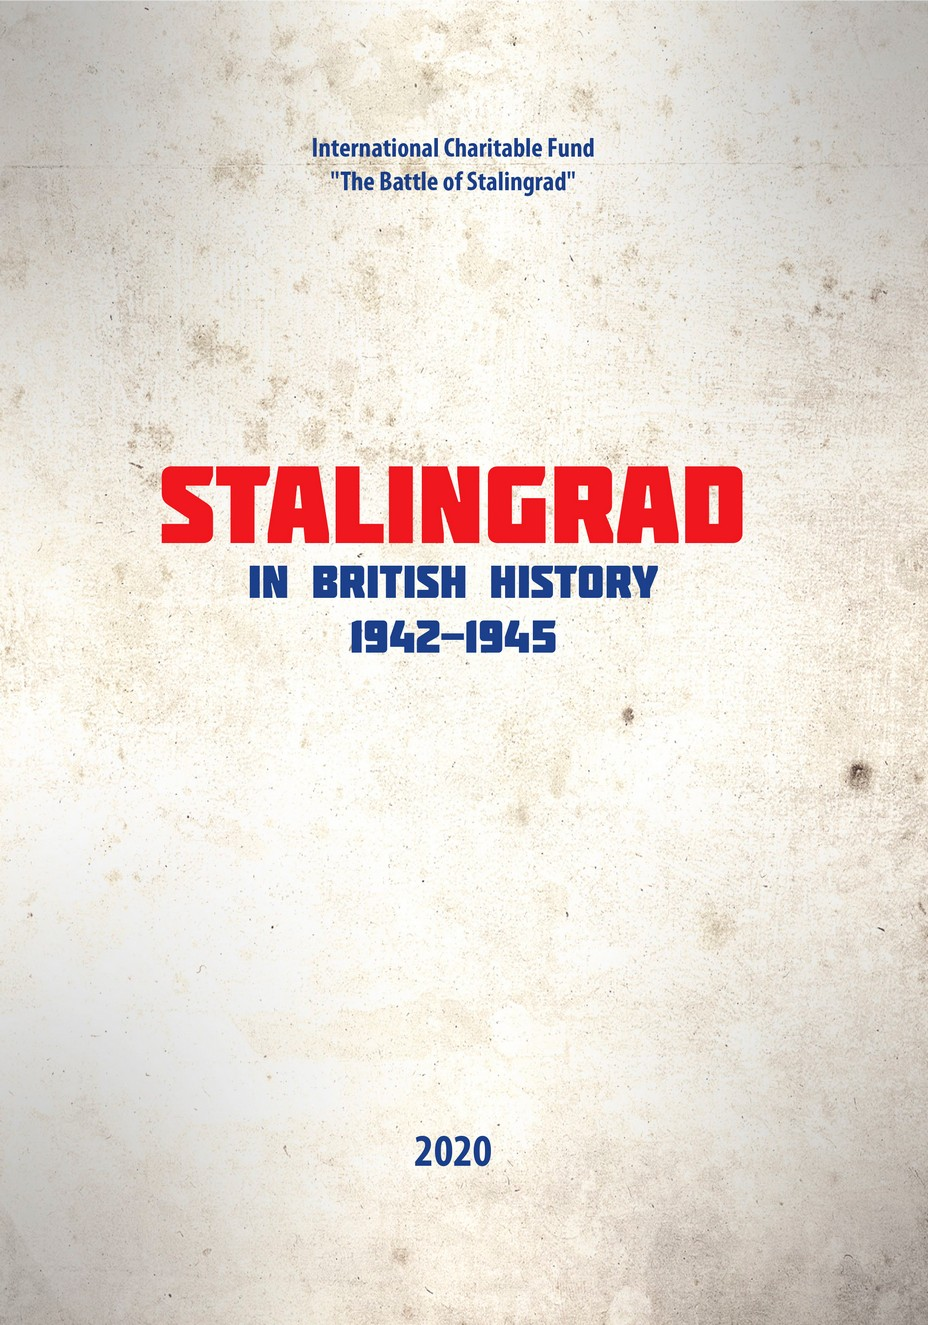 Catalog. Stalingrad in British history. 2020.